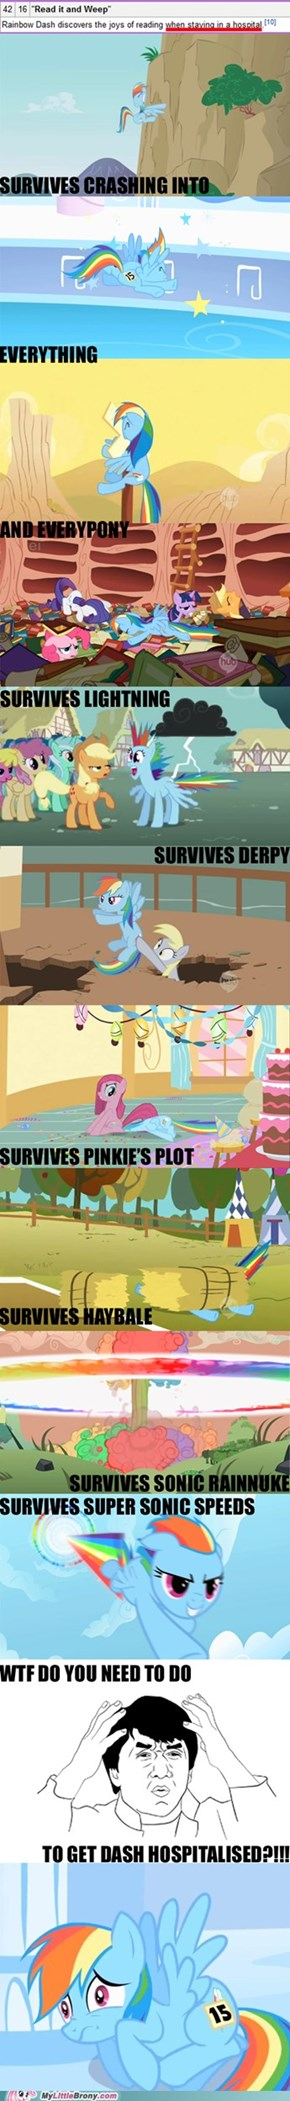 What Is Planned for Rainbow Dash?